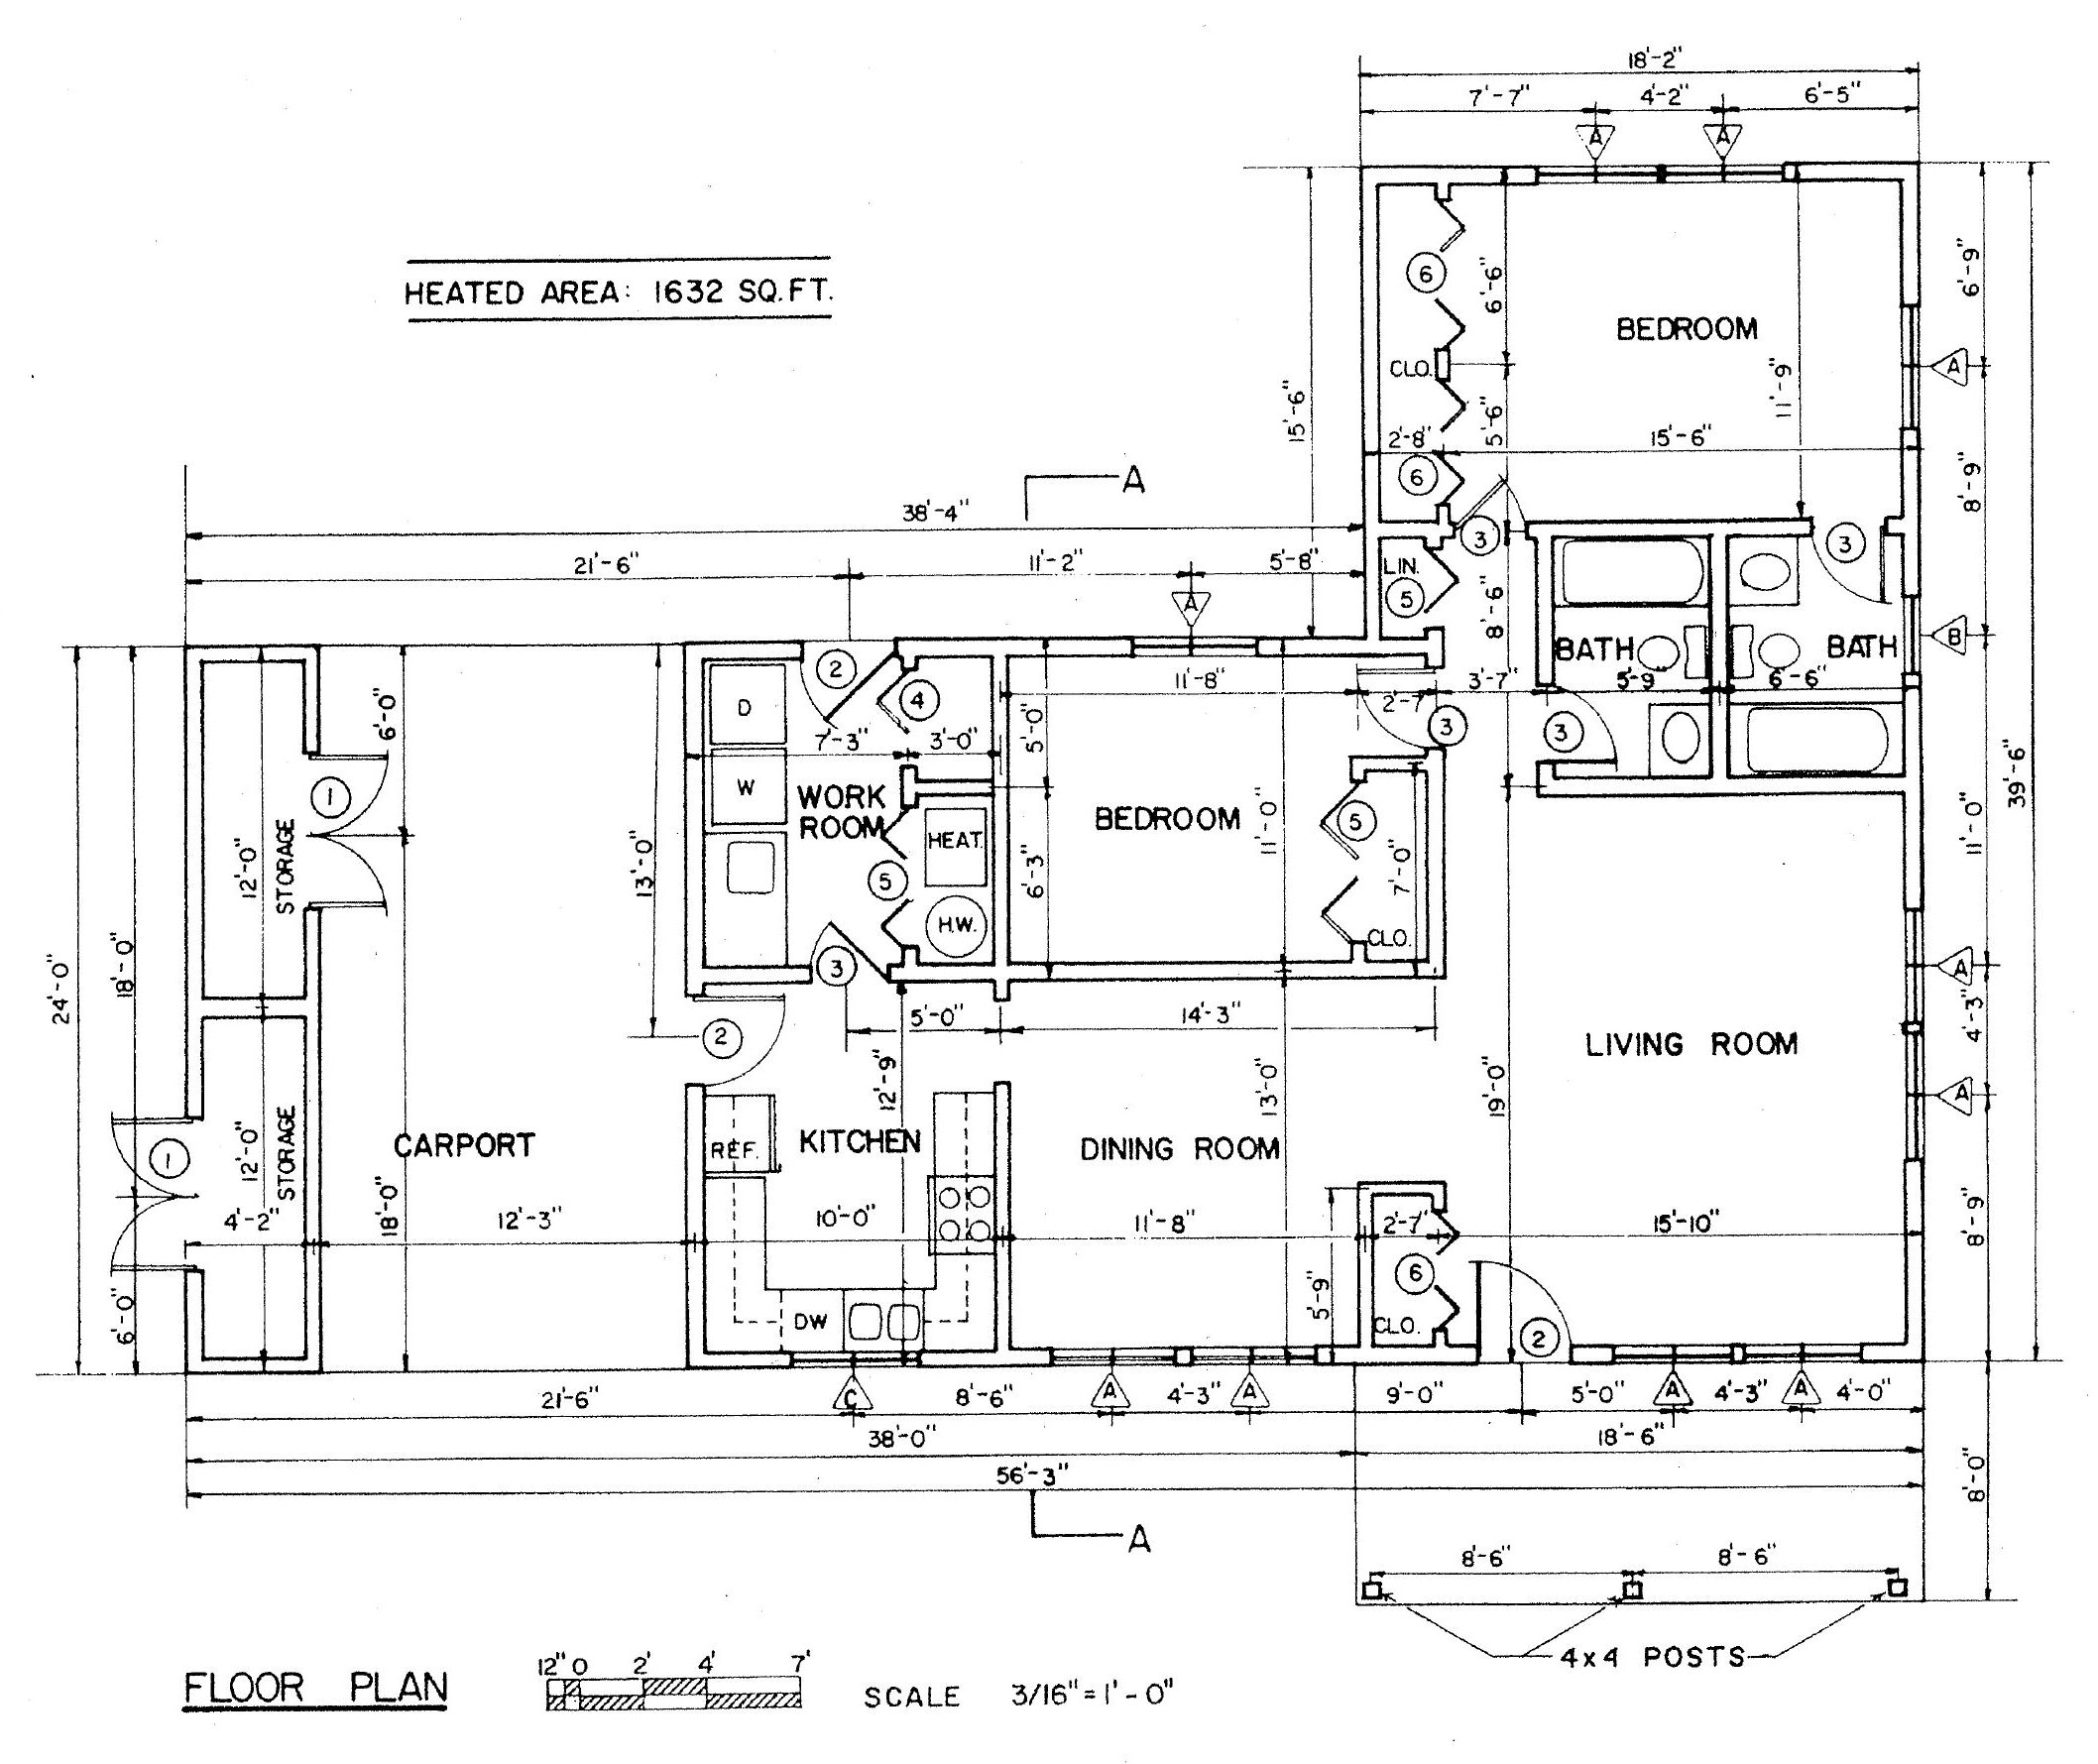 Home ideas How to read plans for a house